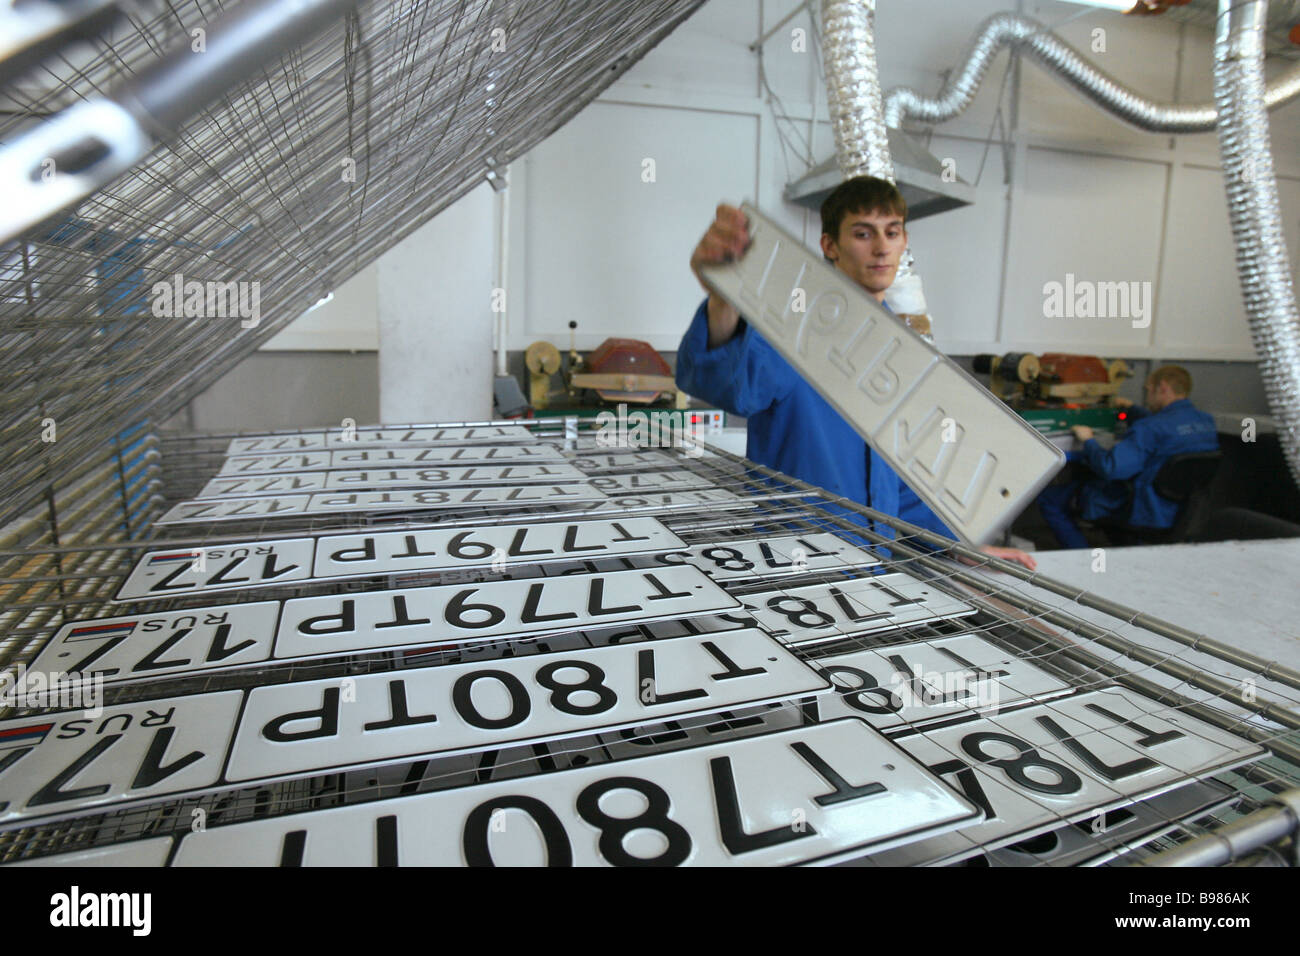 A shop of producing license plates of Russia - Stock Image